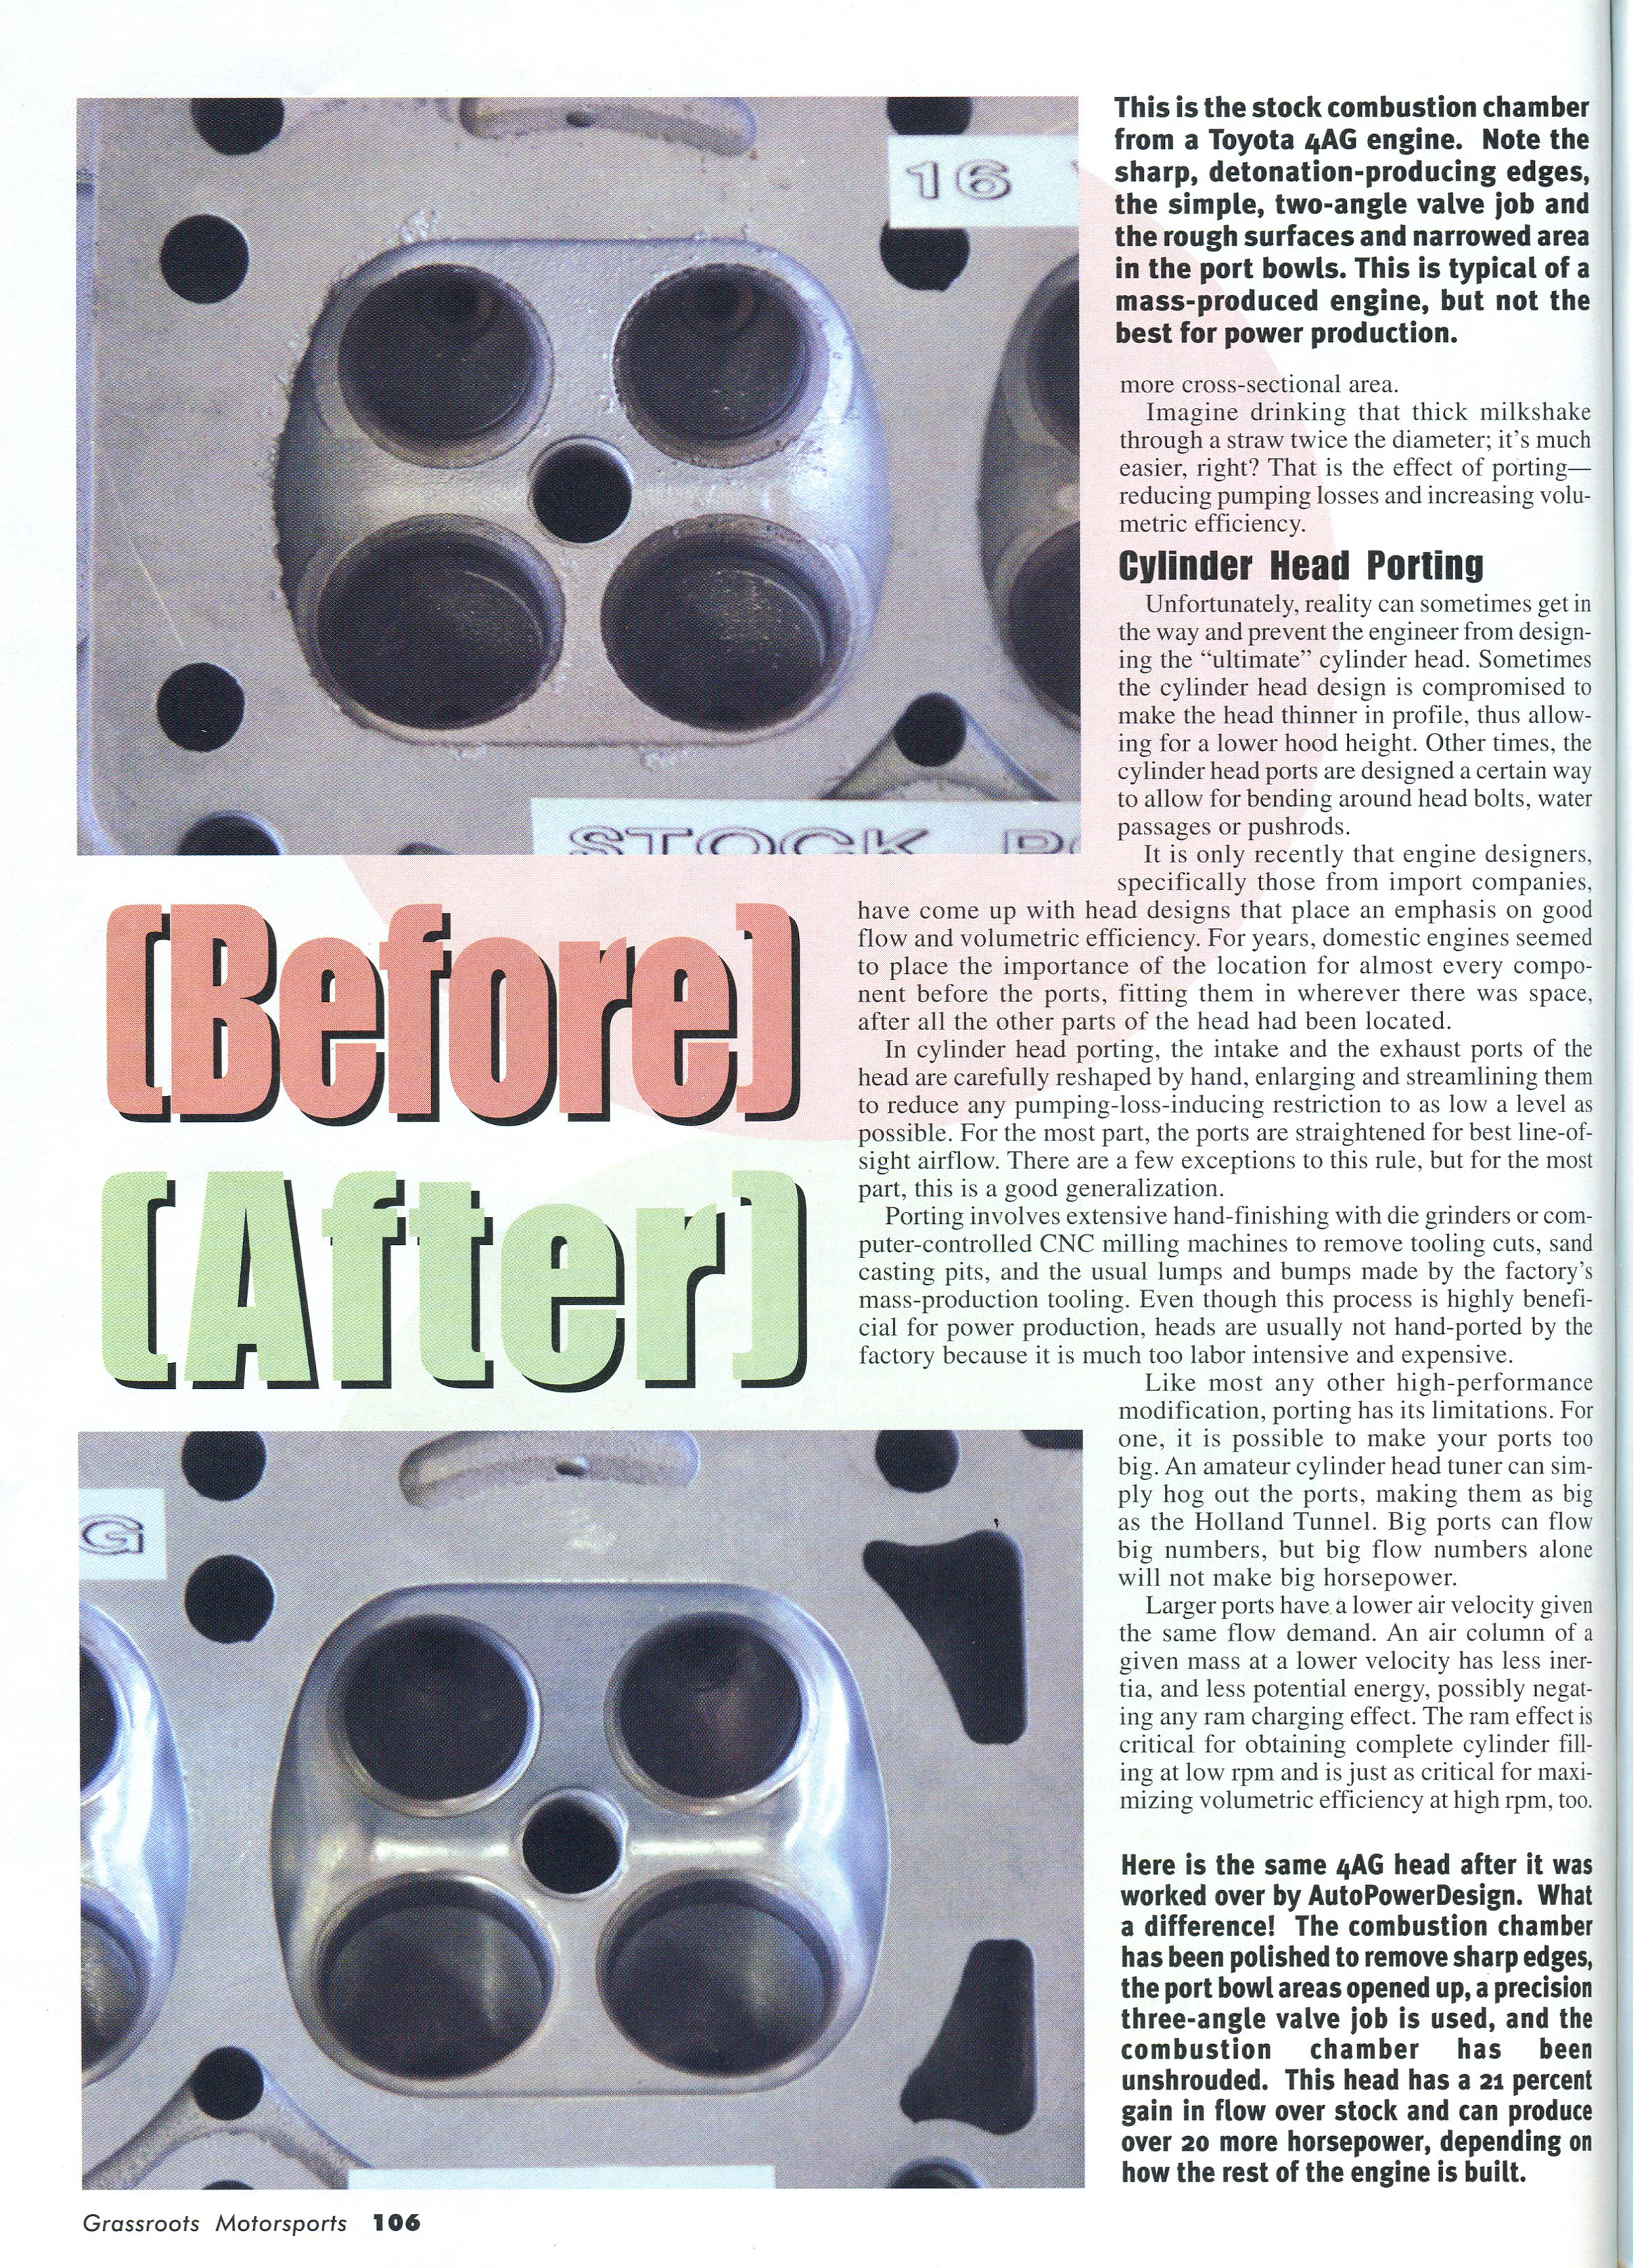 Secrets of cylinder head modifications